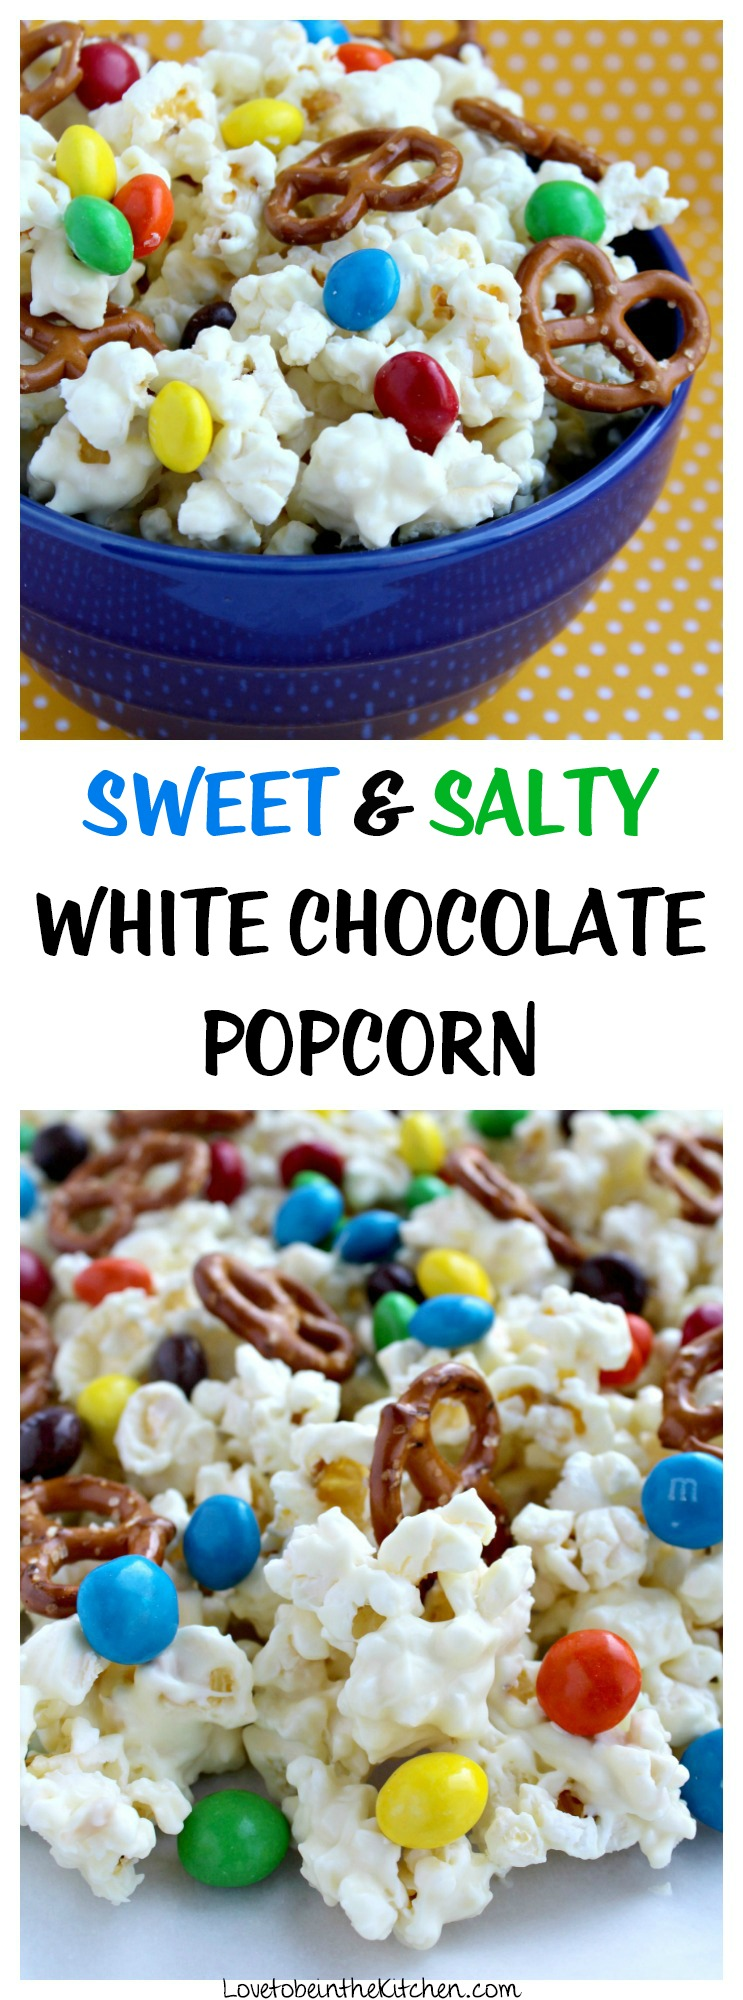 Sweet and Salty White Chocolate Popcorn - Love to be in the Kitchen